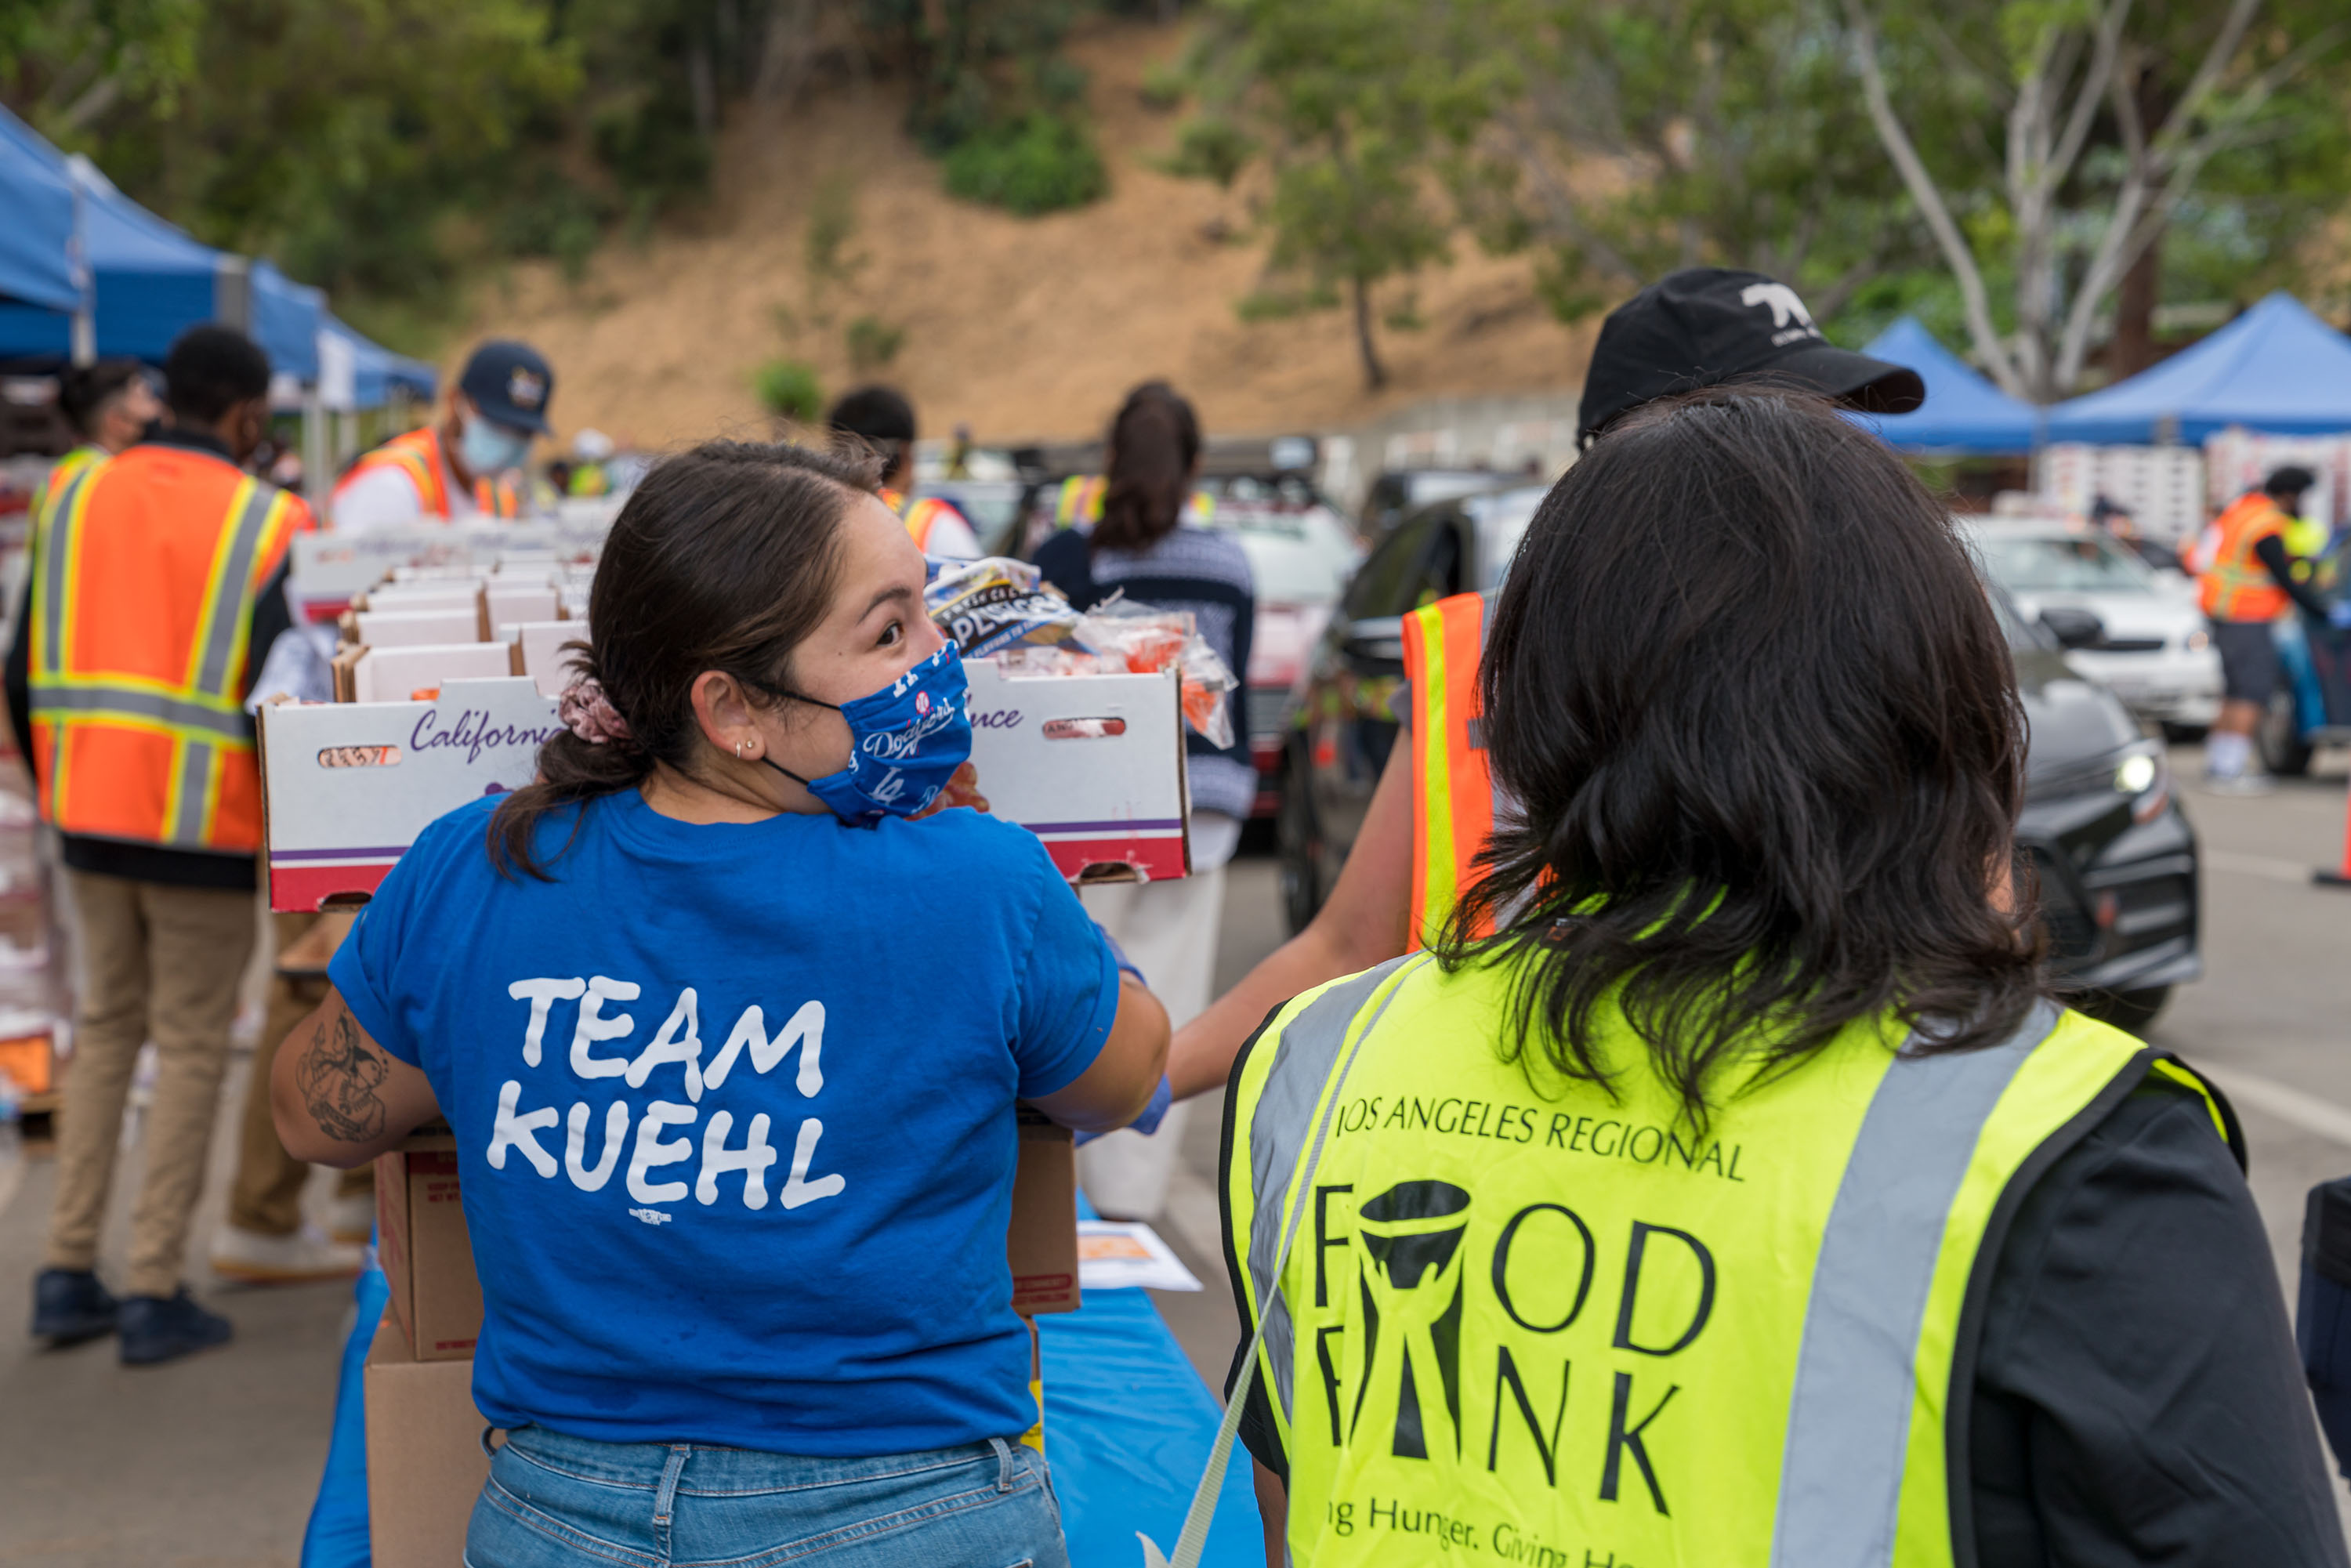 District 3 – Supervisor Sheila Kuehl<br> <b>June 17, 2020 - Hollywood Bowl Food Distribution. </b><br> <i>Photo by Chris Valle / For The Board of Supervisors</i>